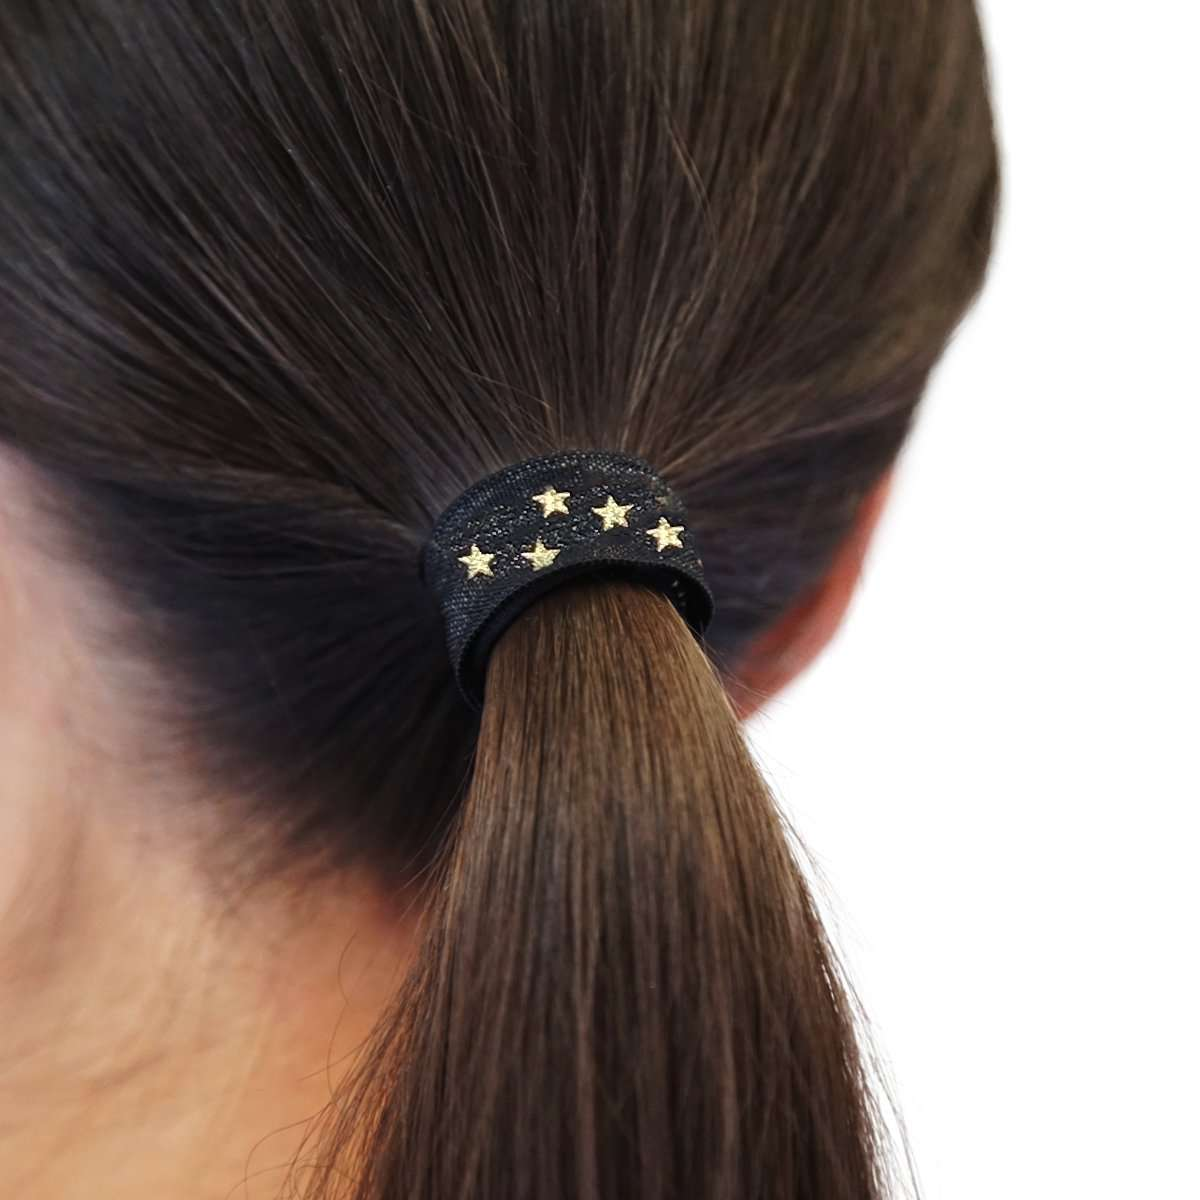 Snag-Free Hair Ties - Star Print